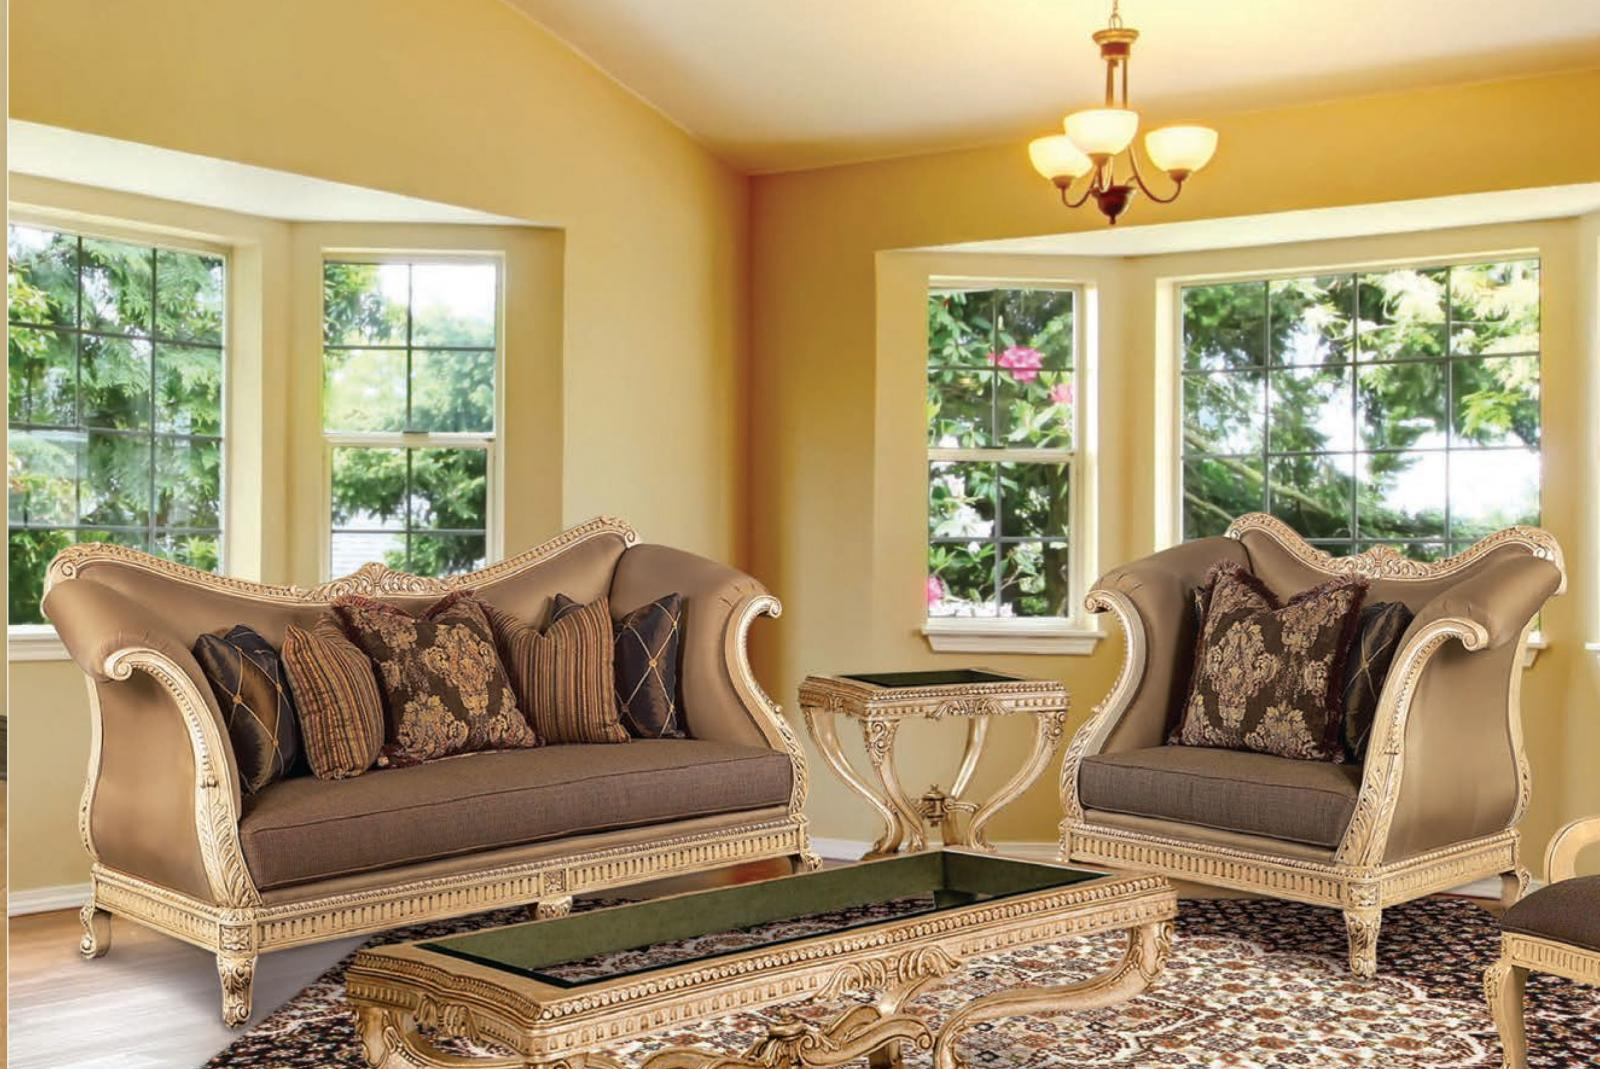 Classic, Traditional Coffee, Gold, Cocoa, Caramel Chenille and Fabric, Wood, Solid Hardwood Living Room Set 2 pcs Riminni by Benneti